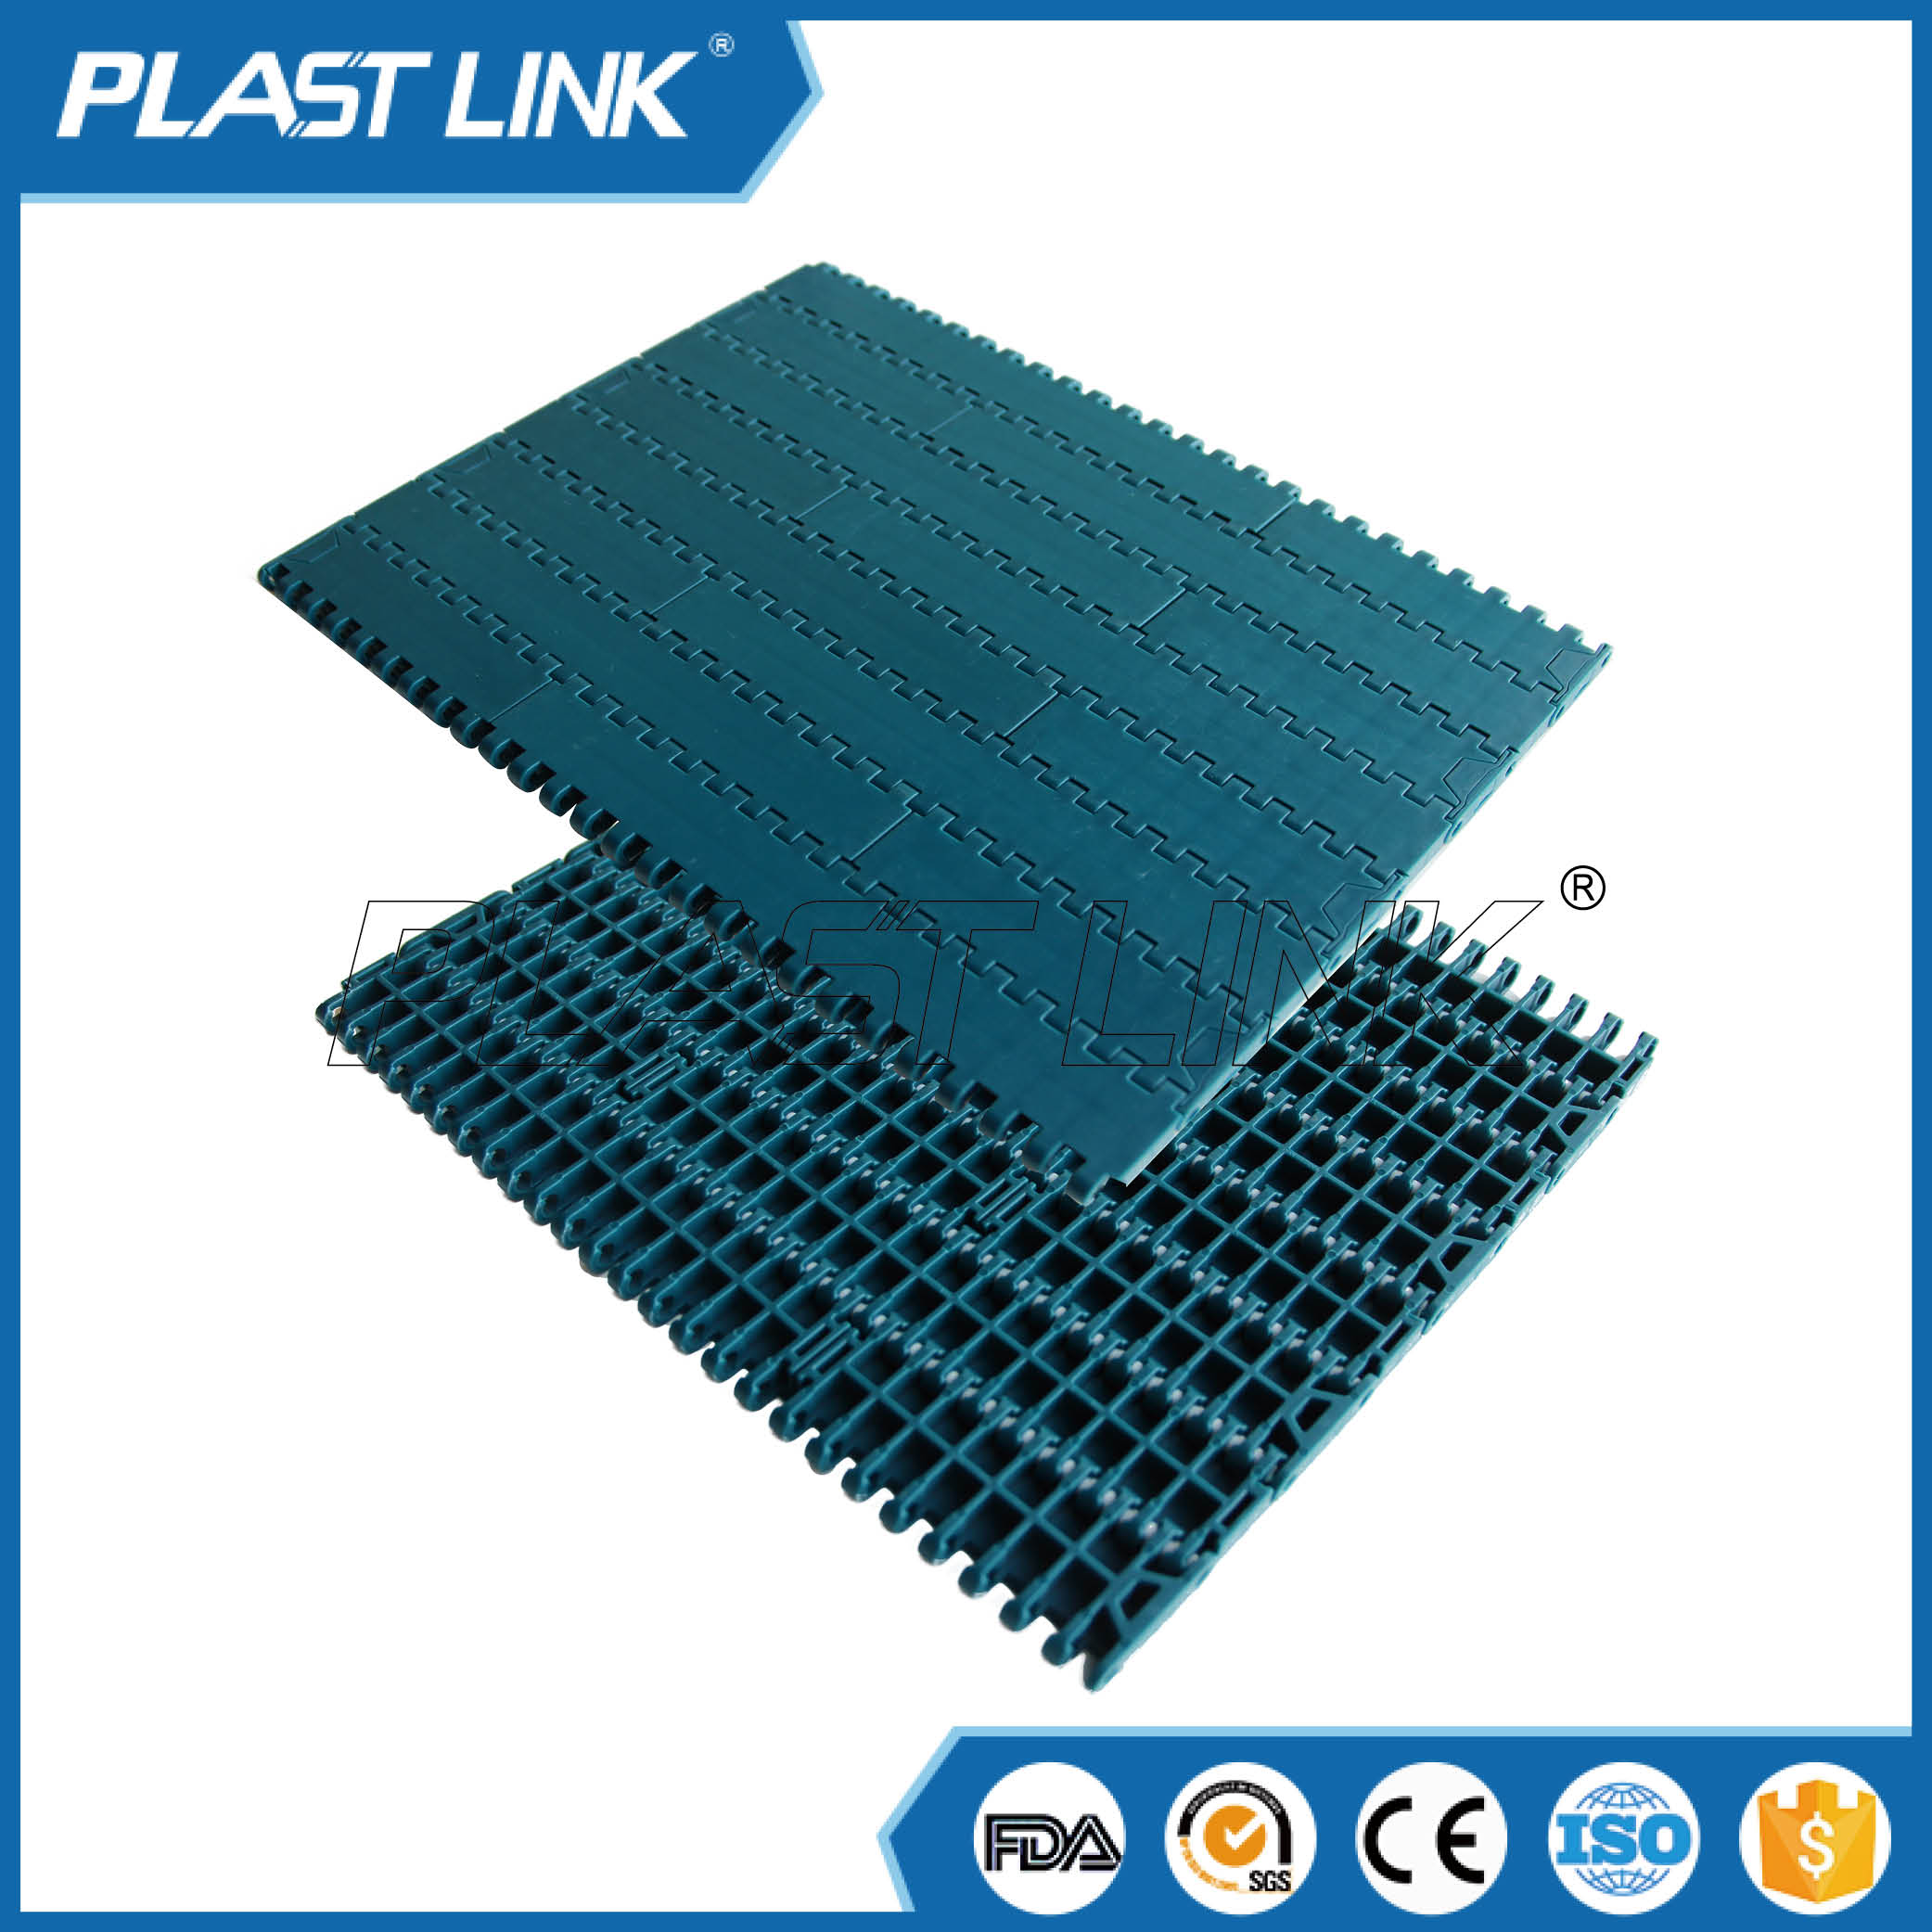 PlastLink 1000 plastic chain conveyor belt